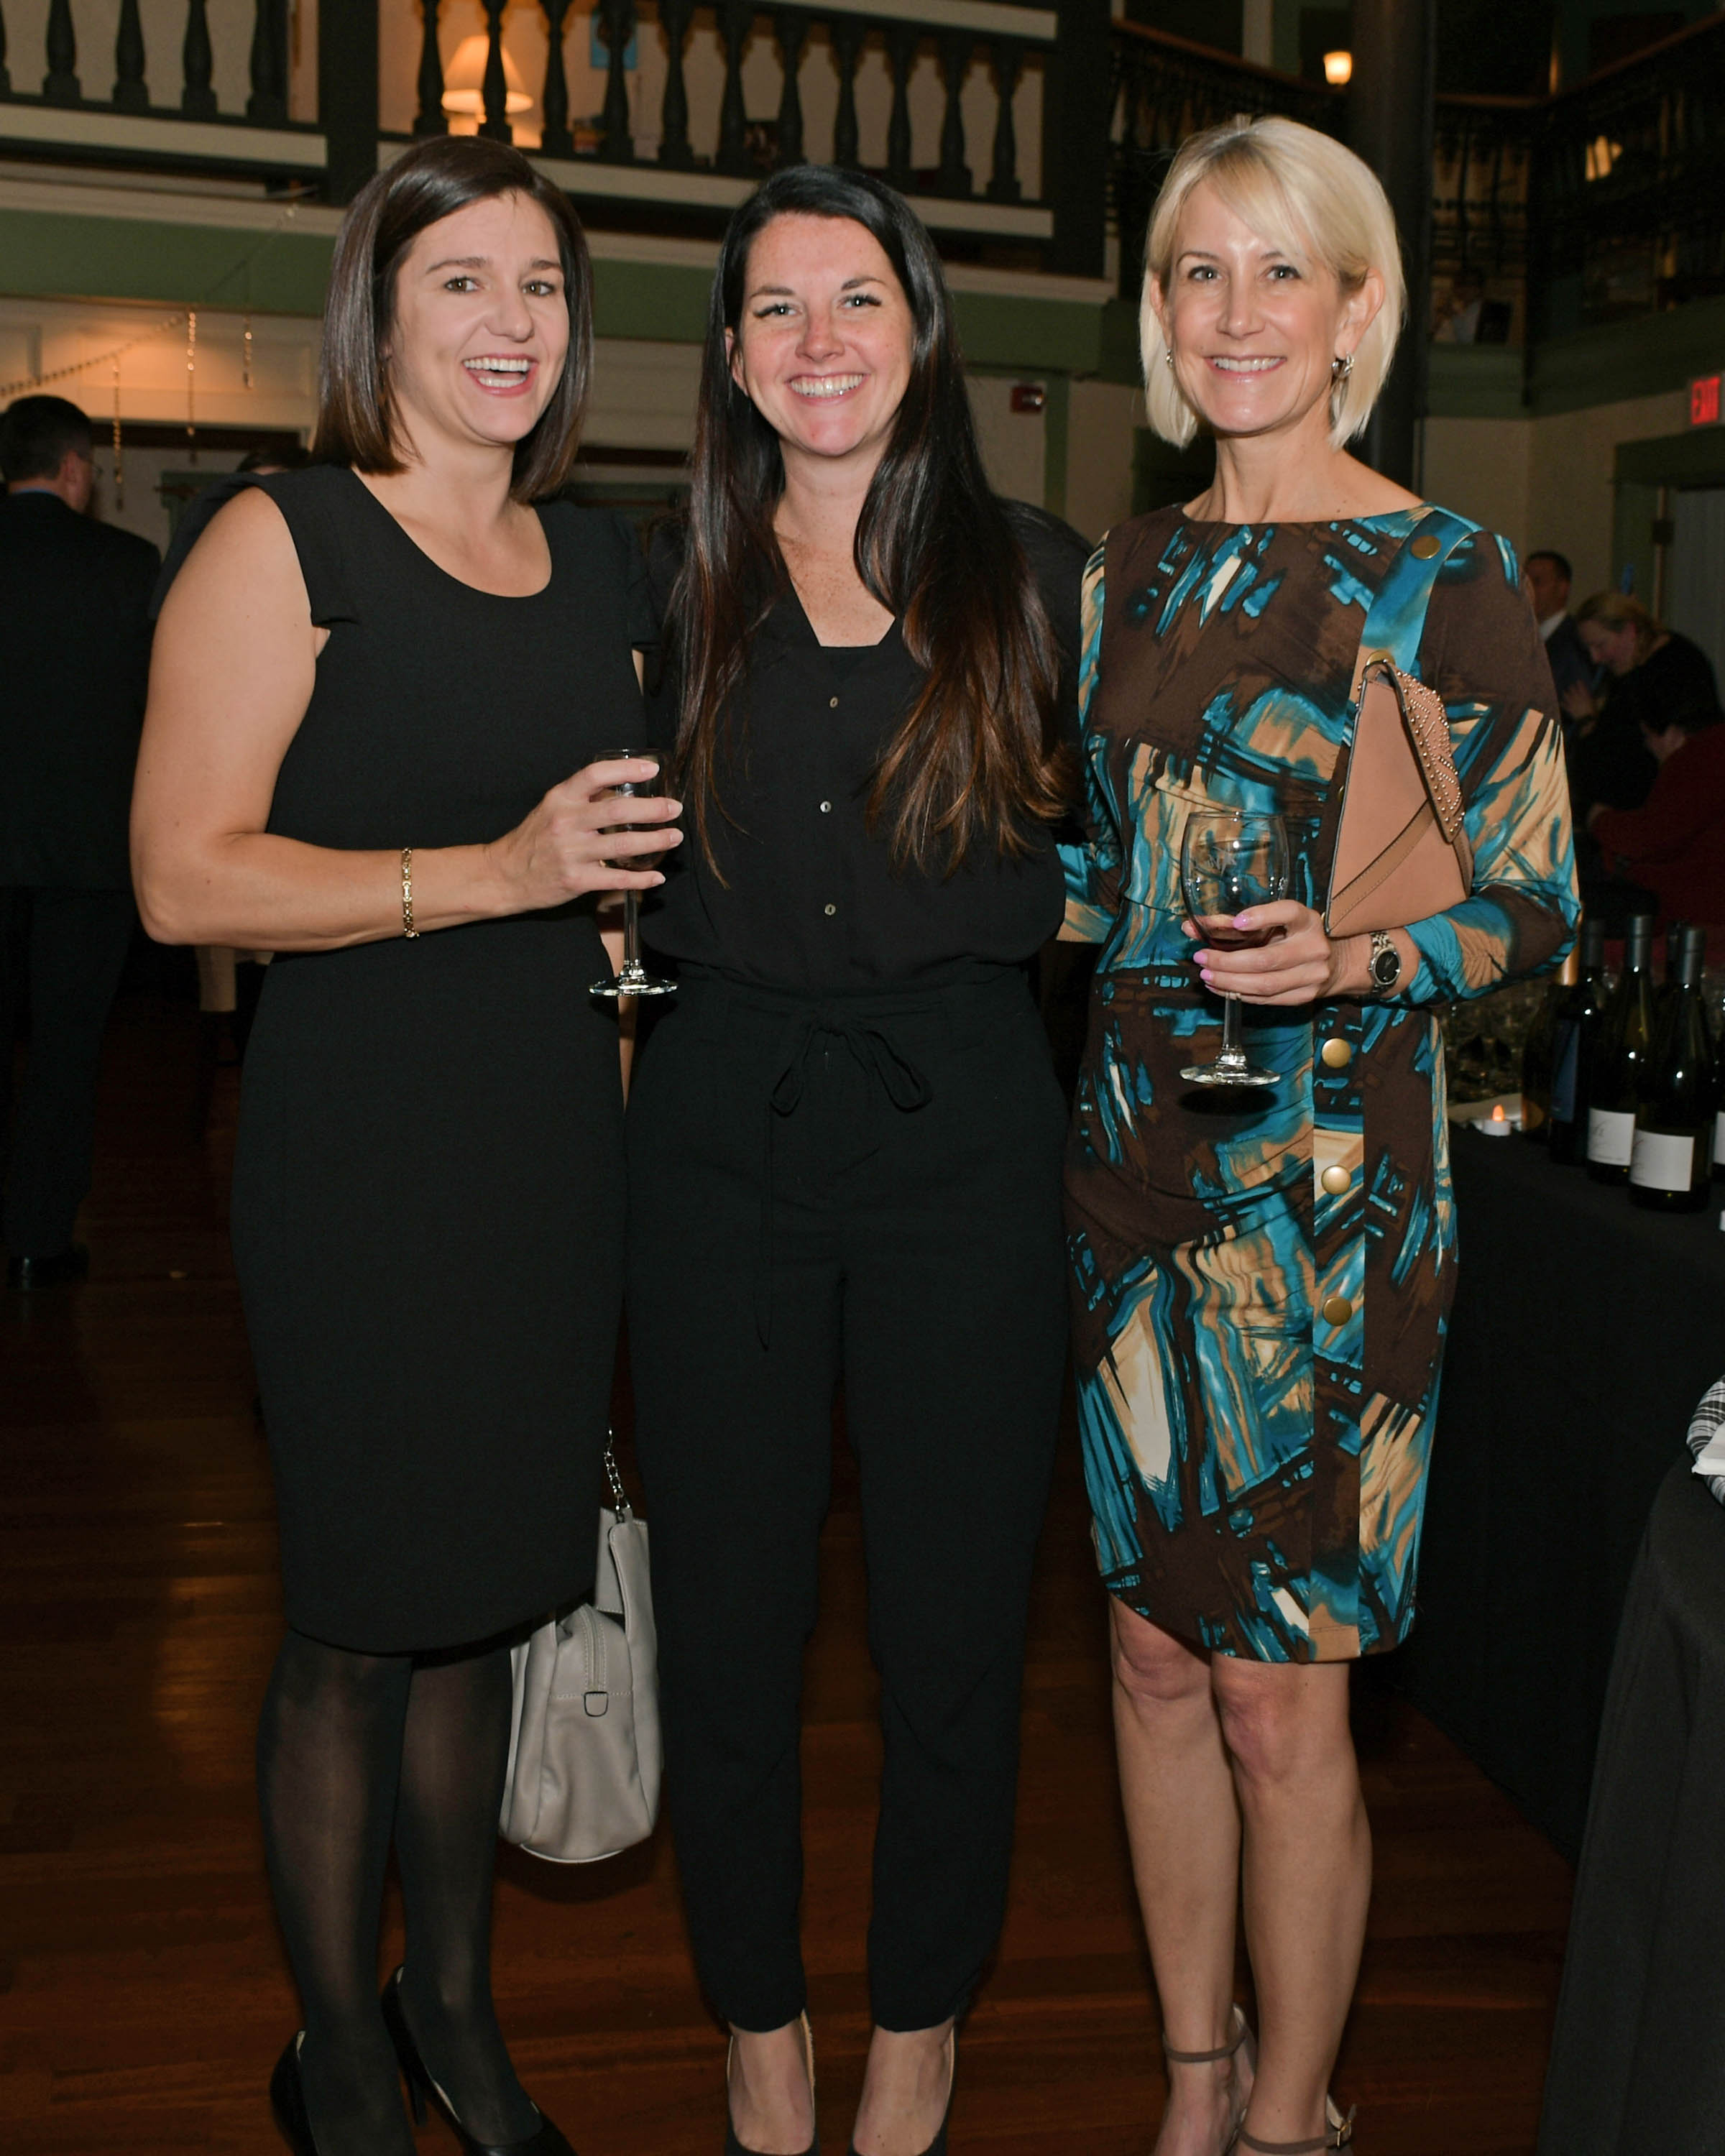 Vin Le Soir to benefit AIM Services, Inc. three women with wine at AIM event